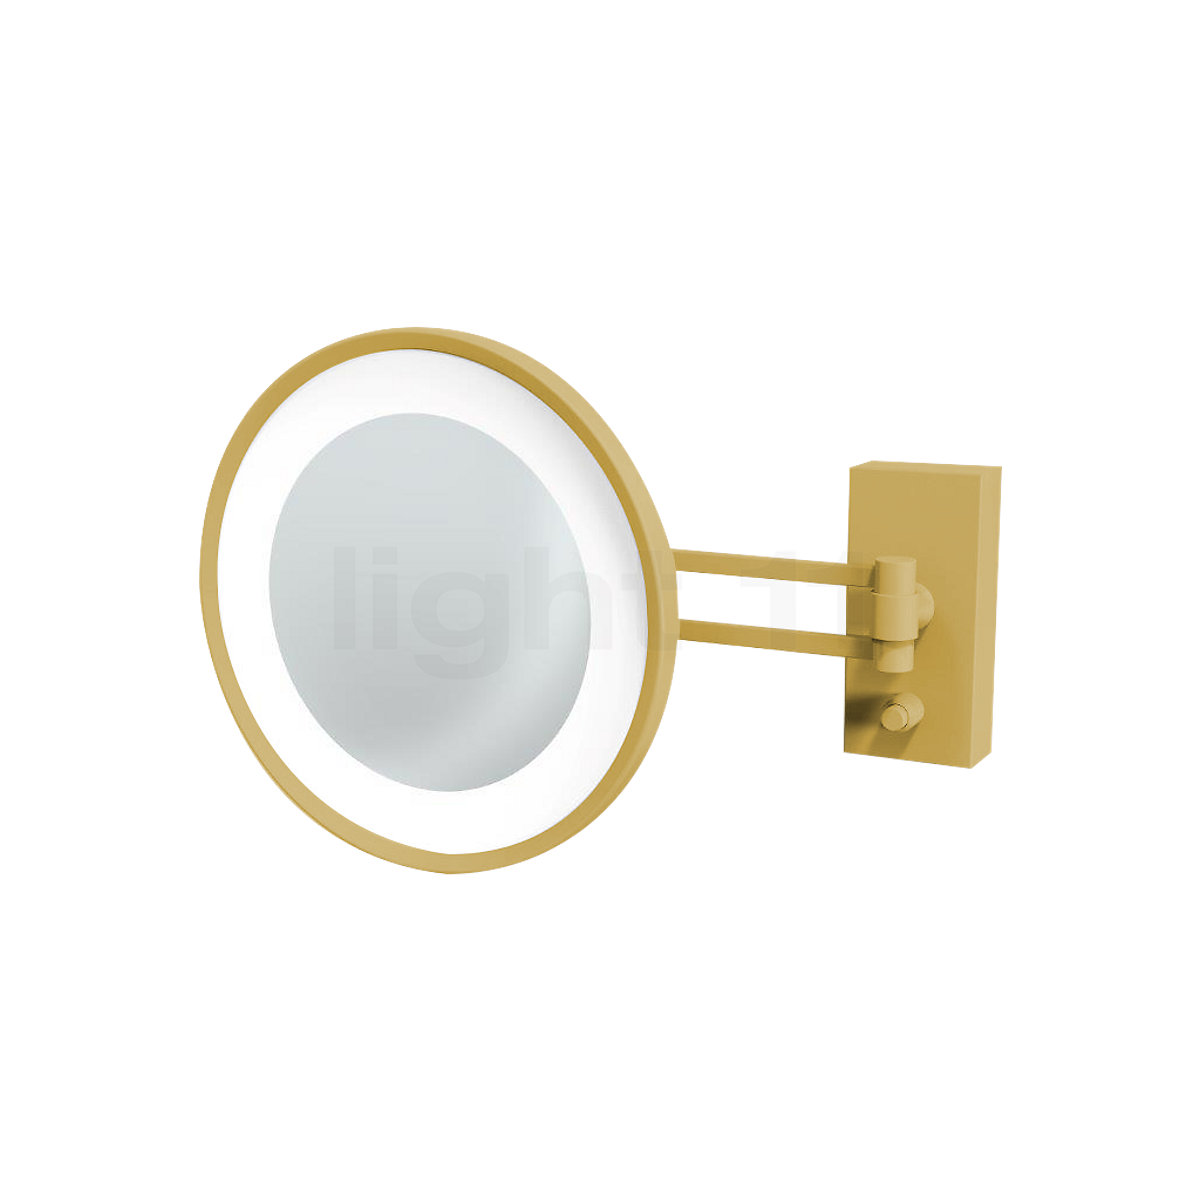 Buy Decor Walther Bs 36 Wall Mounted Cosmetic Mirror Led At